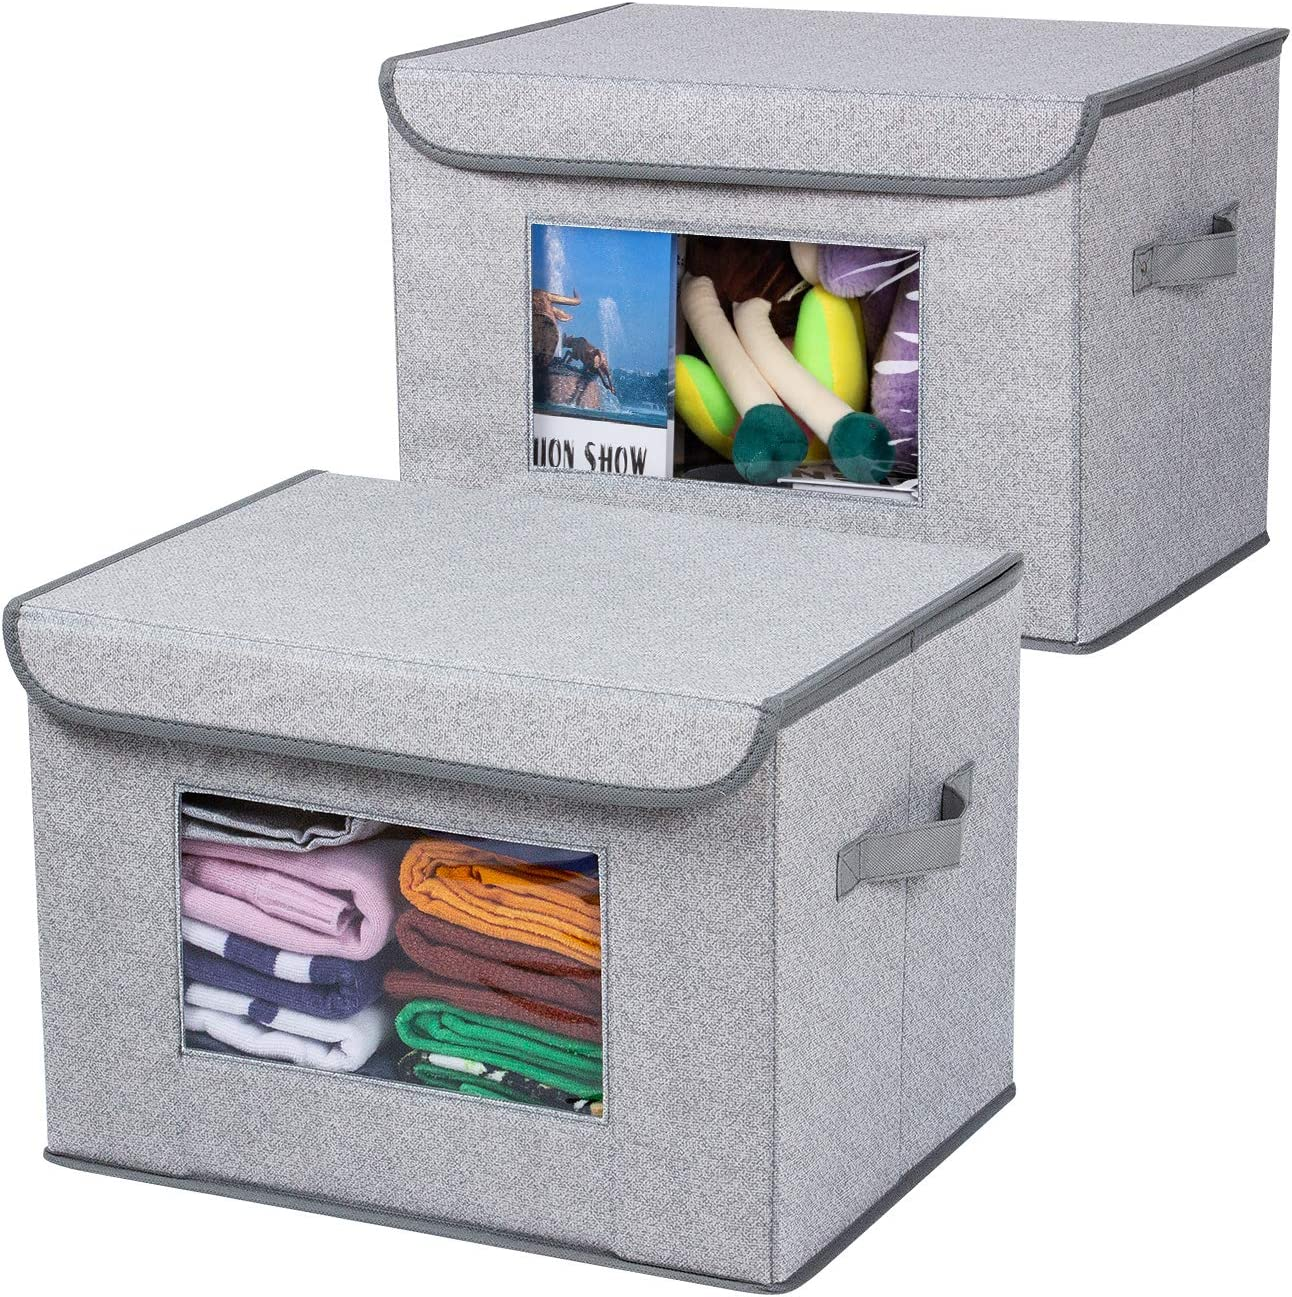 """Univivi Larger Storage Cubes [2-Pack] Foldable Storage Box with Lid, Collapsible Storage Bin Organizer Basket with Sturdy Handles for Home, Nursery, Closet (16.92 x 11.8 x 11.81"""")"""